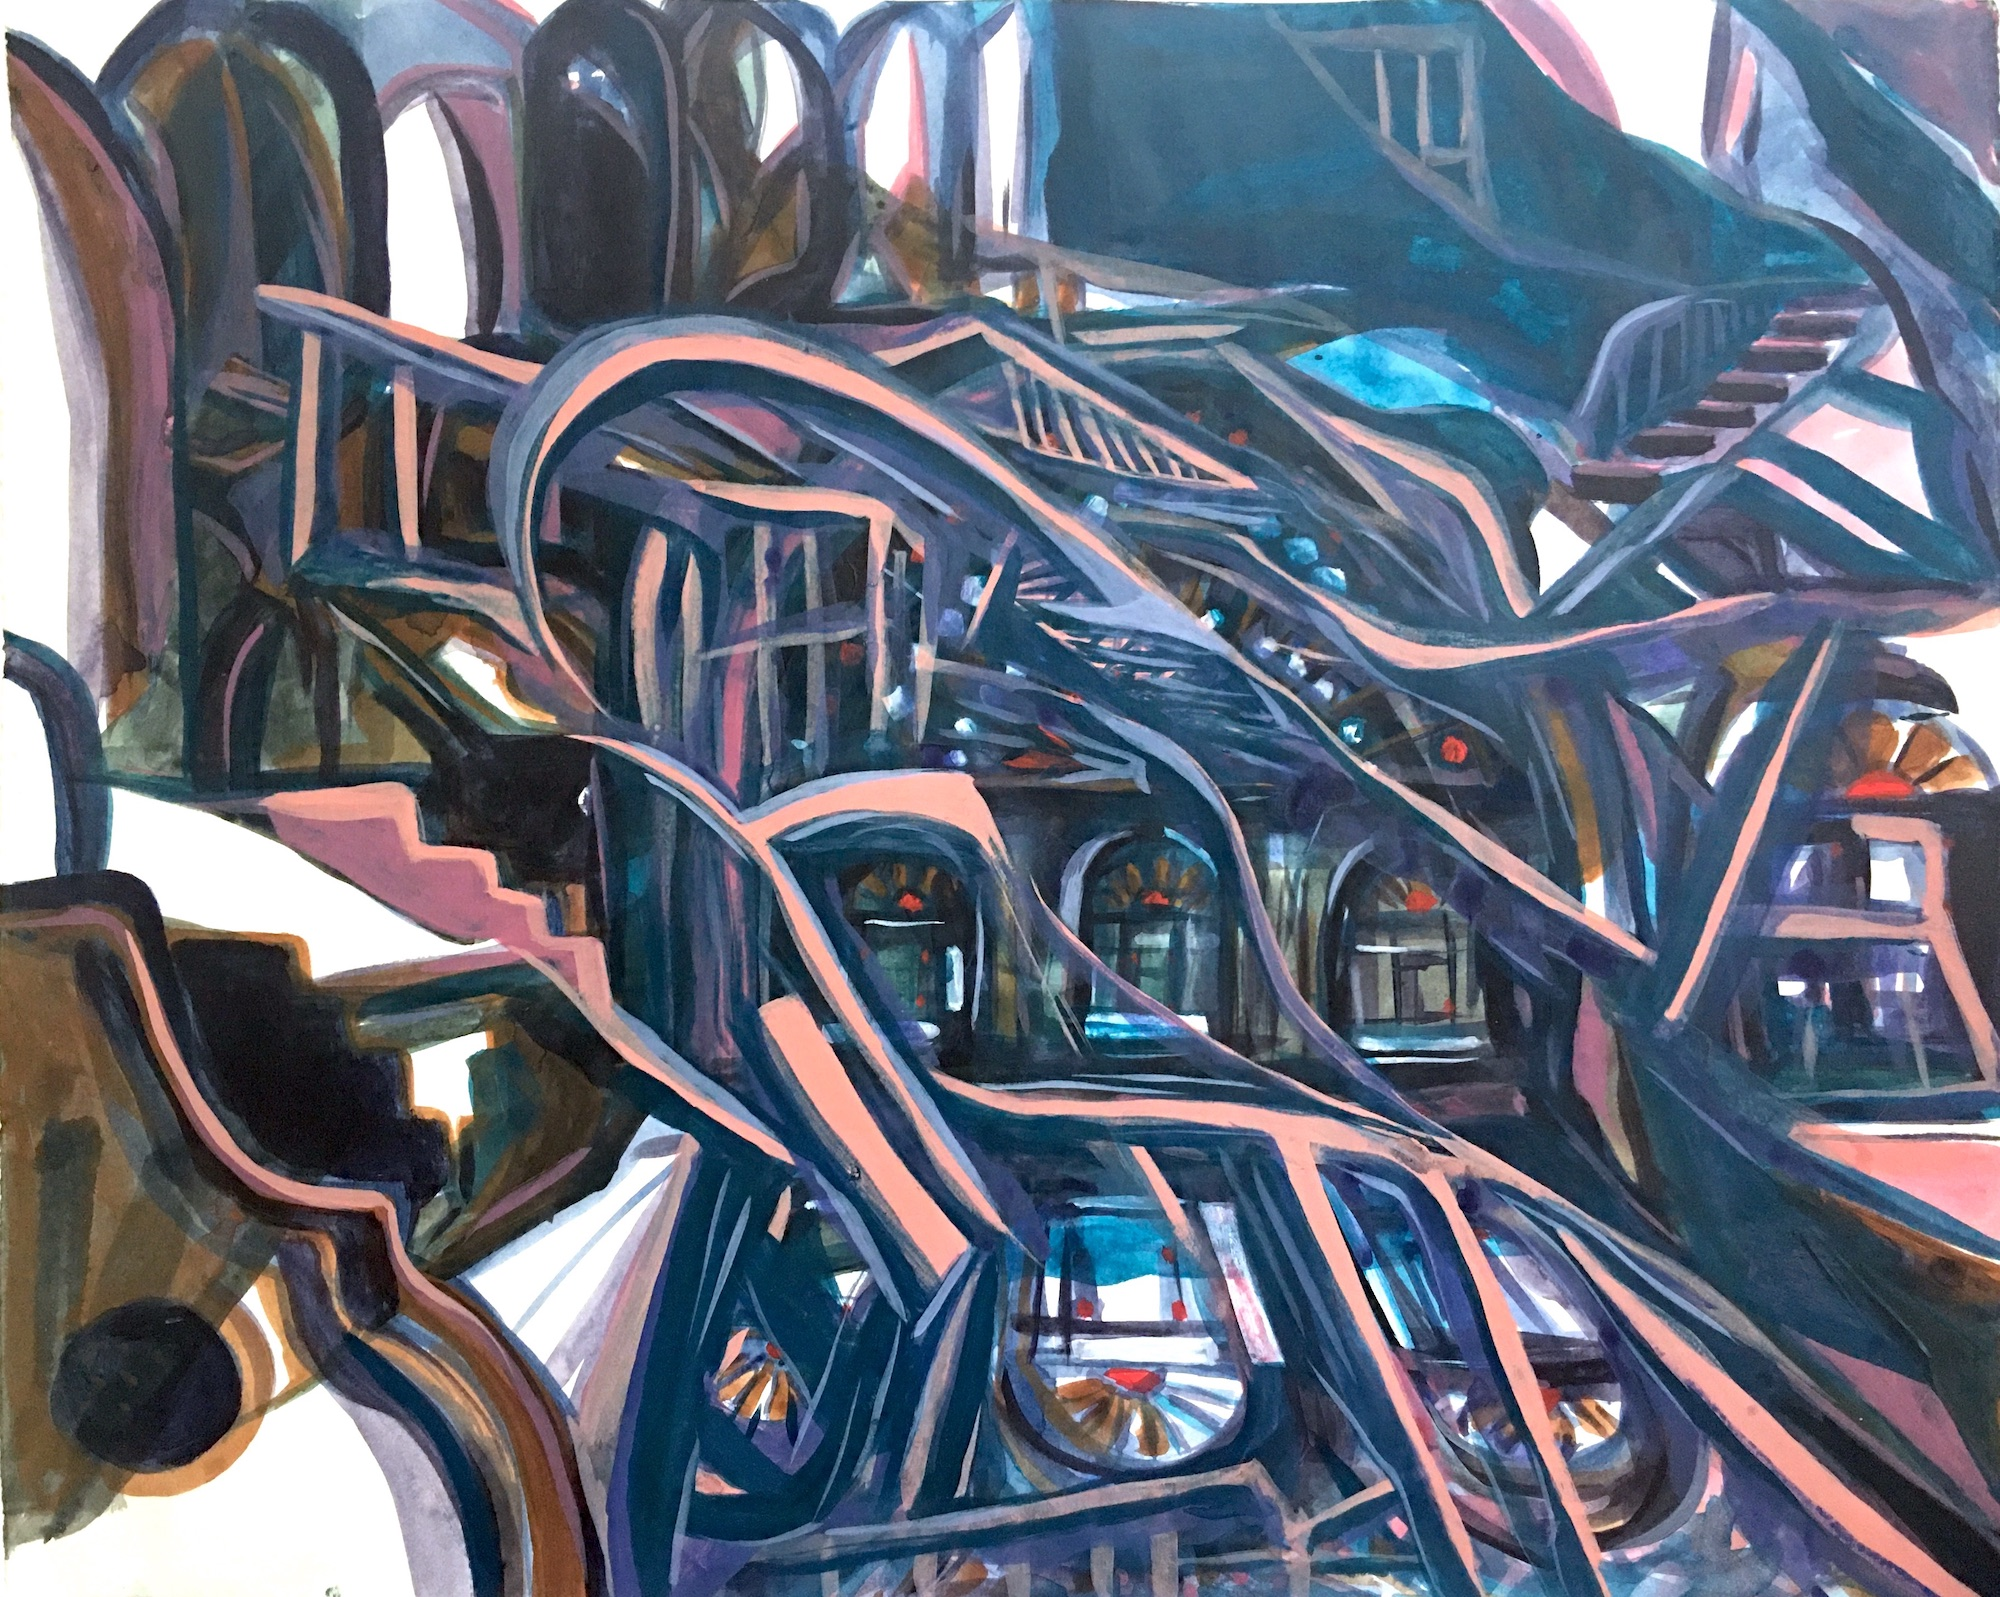 Night View of Persian Homes with Stained Glass Windows, acrylic on paper, 18x22 inches, 2020